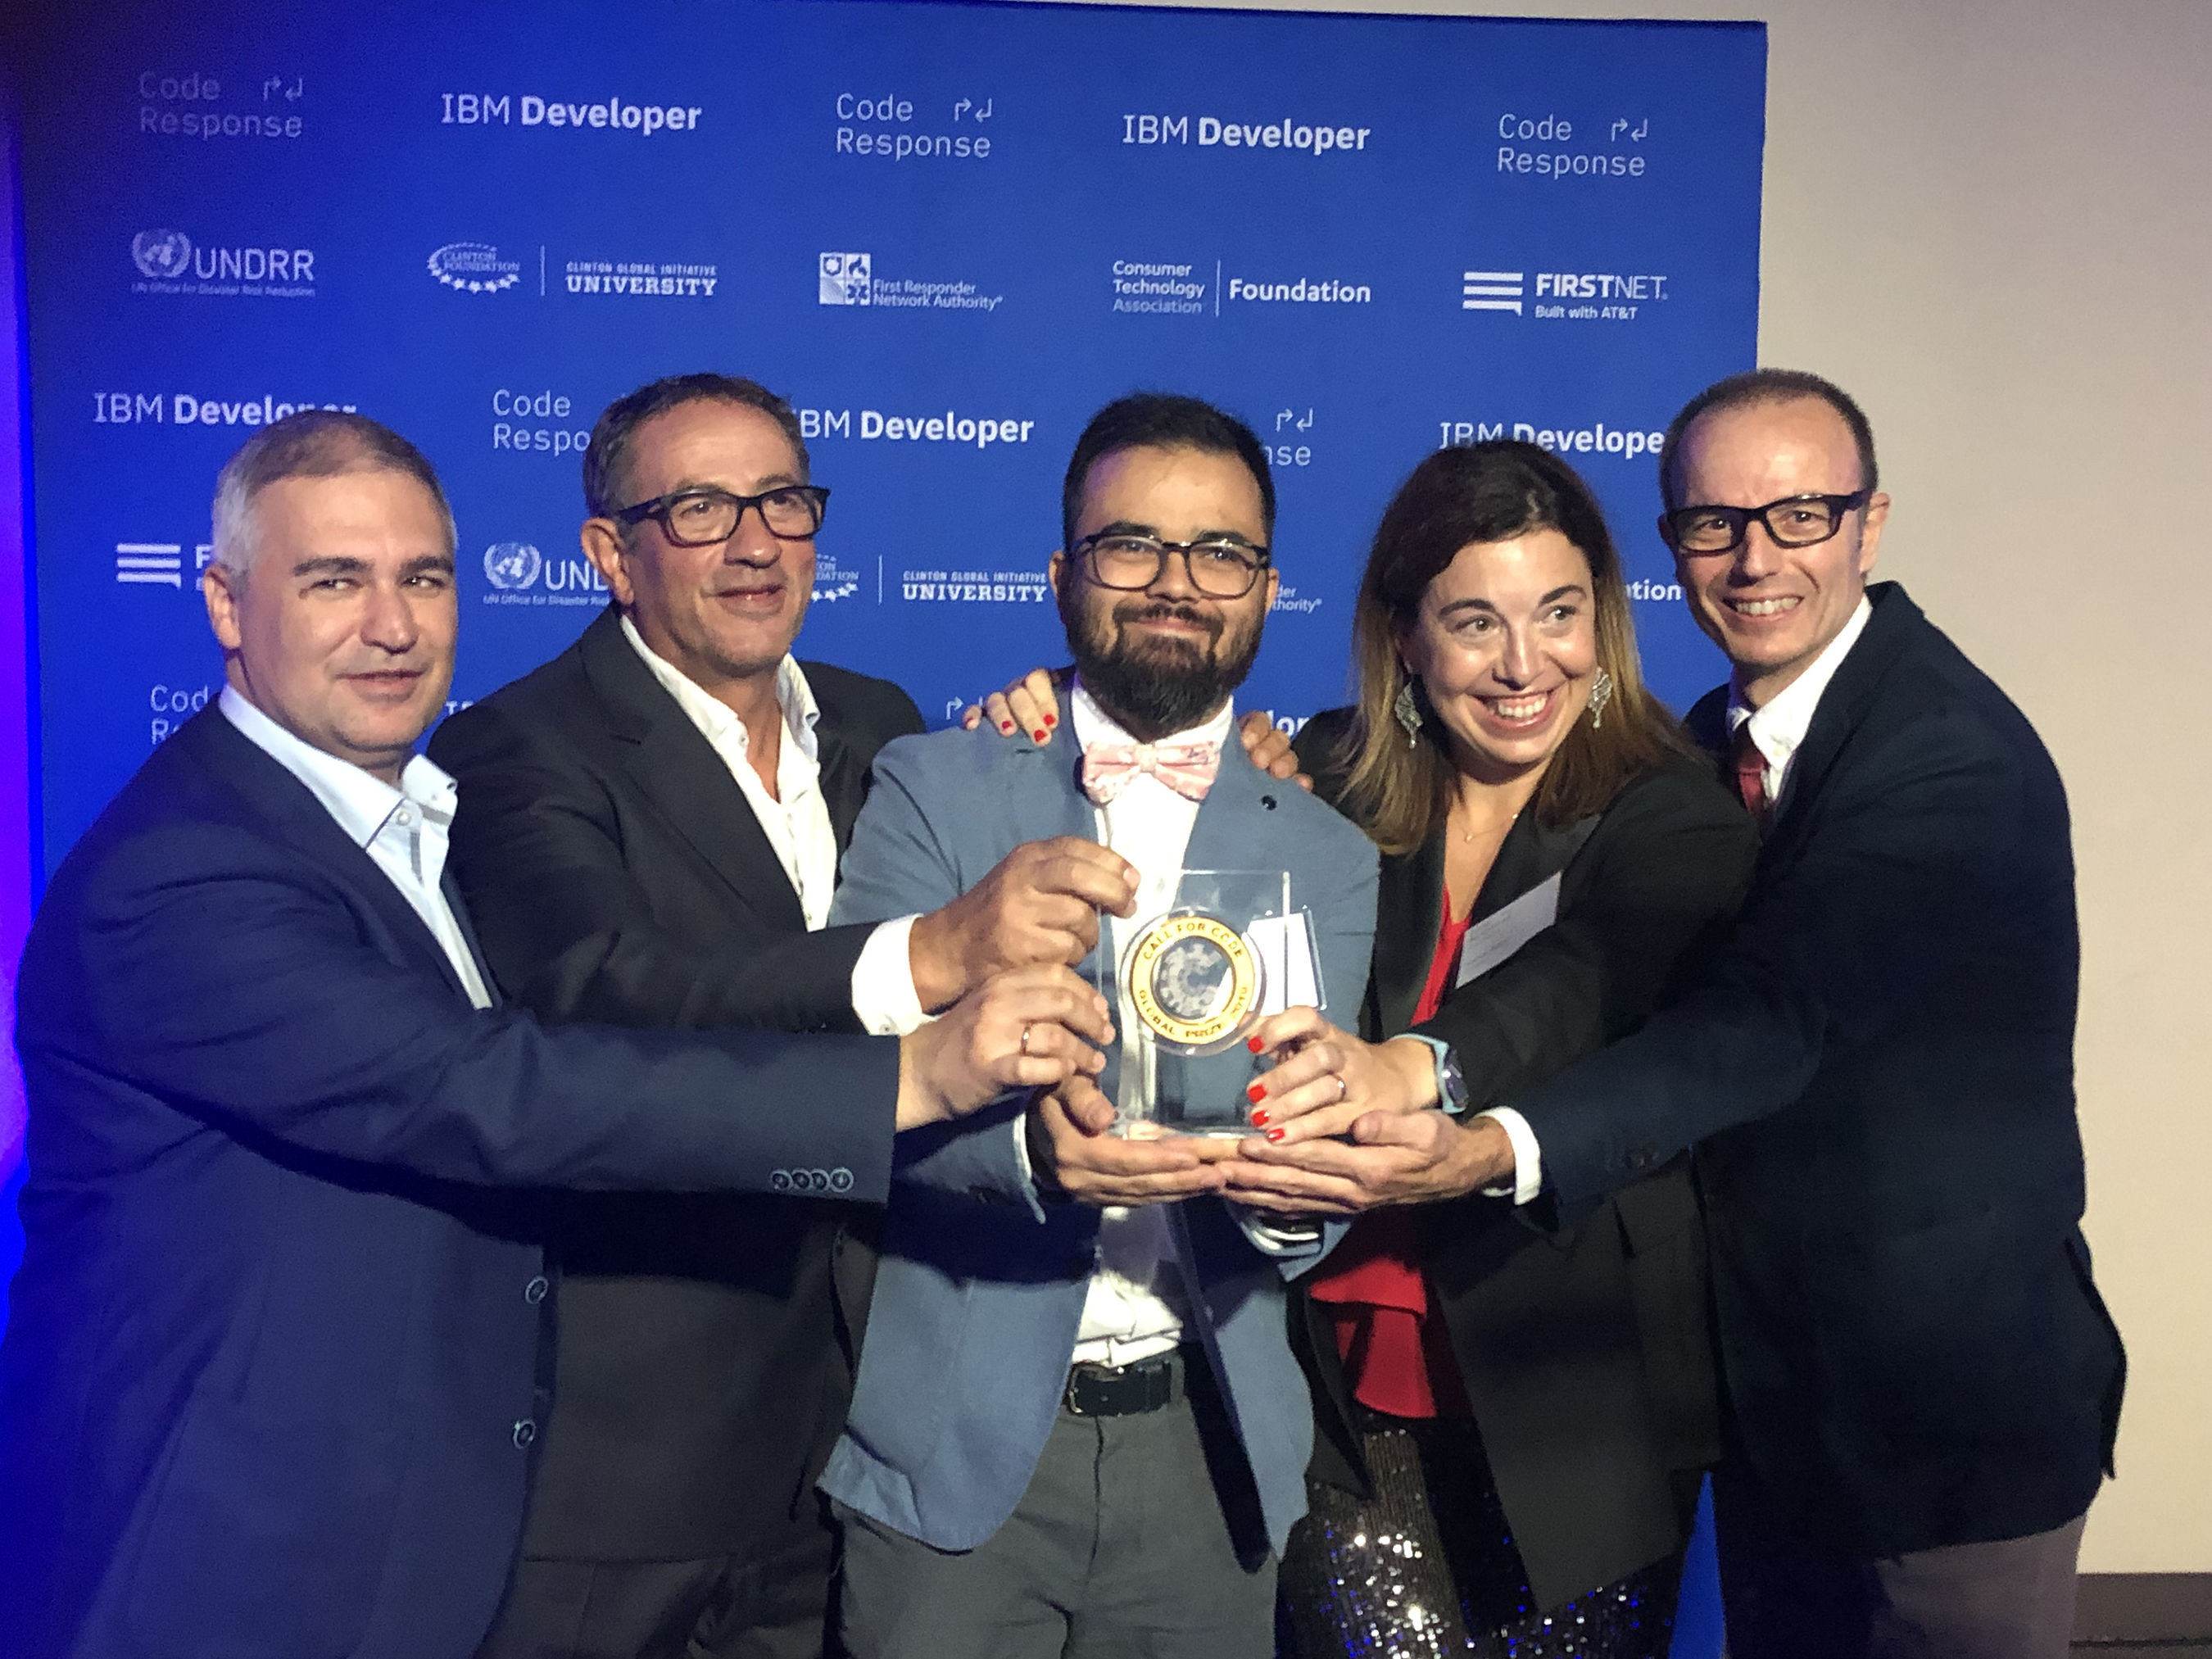 IBM Call for Code_Prometeo Award